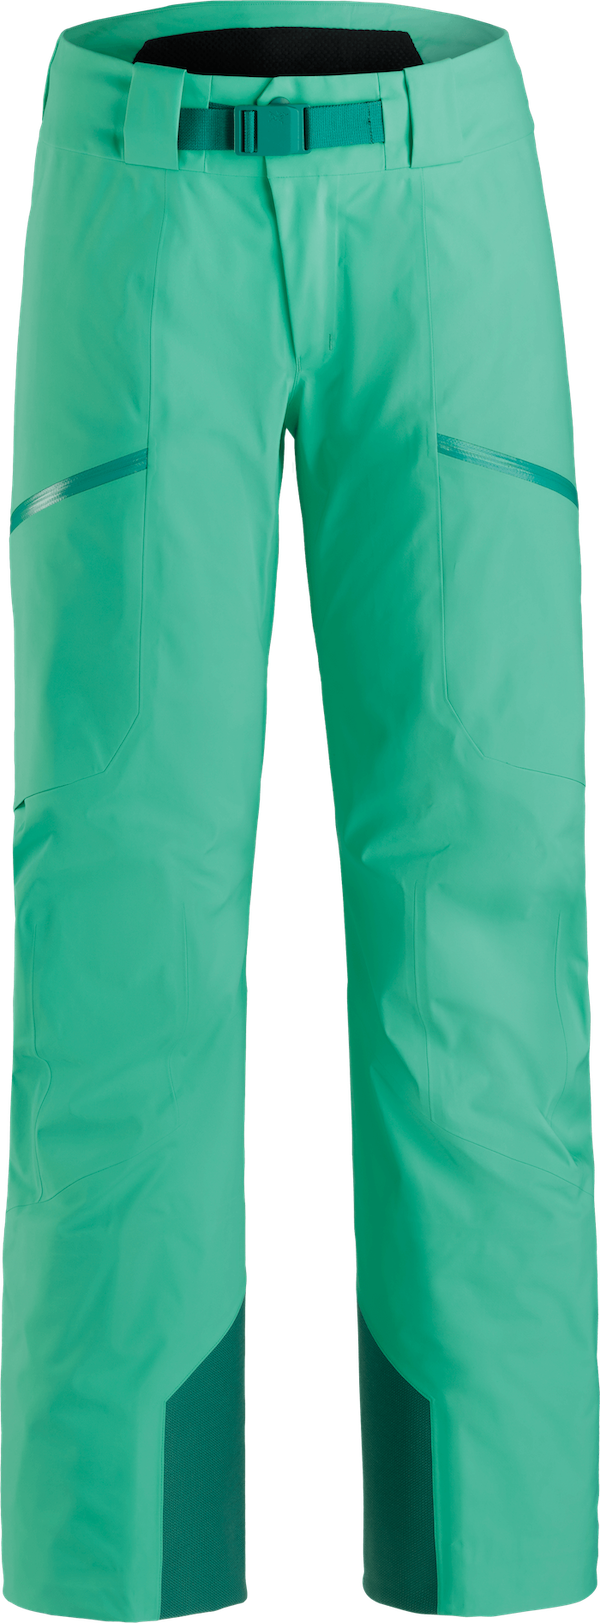 Arcteryx Women's Sentinal AR Pants 2019-20 at Northern Ski Works